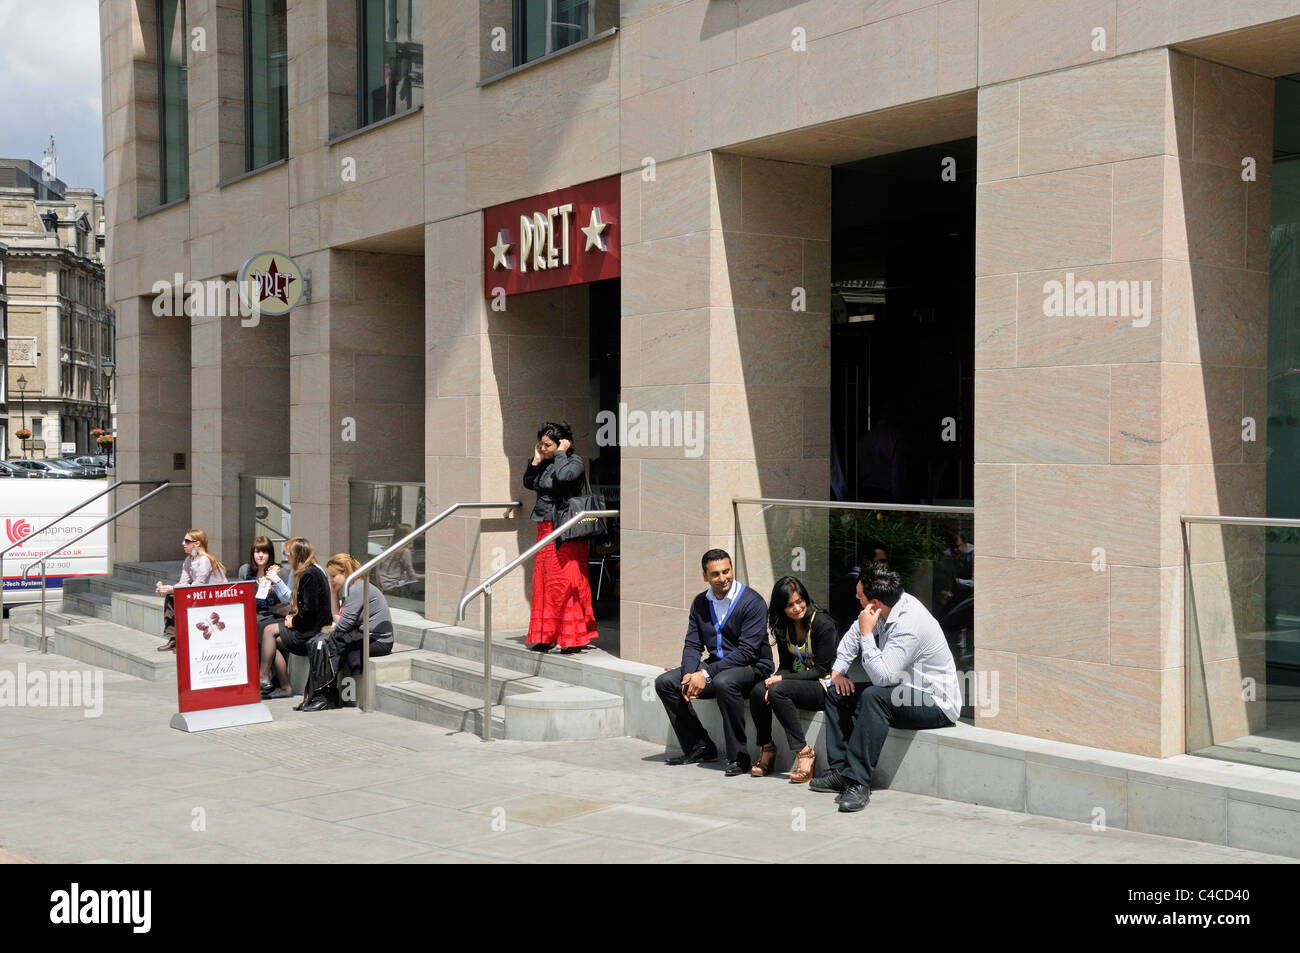 People sitting outside Pret A Manger Holborn Viaduct, Holborn Circus London England UK - Stock Image